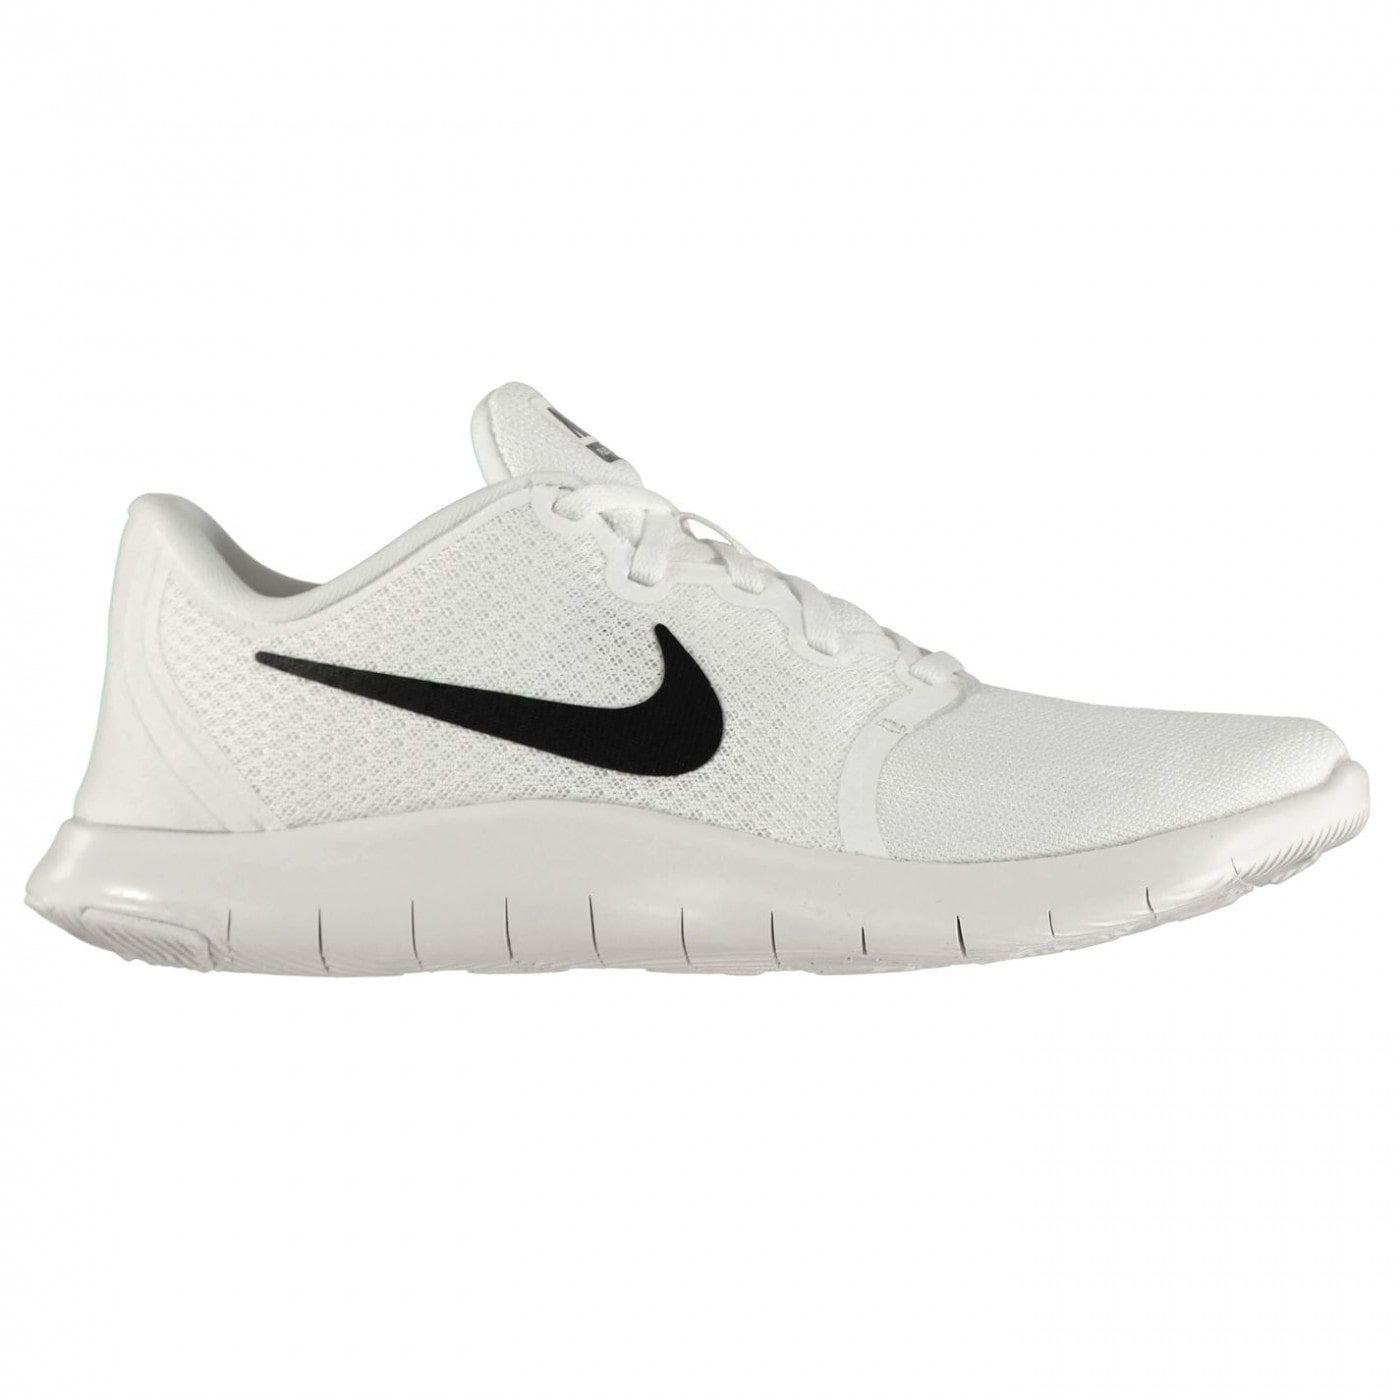 Nike Flex Contact 2 Mens Trainers